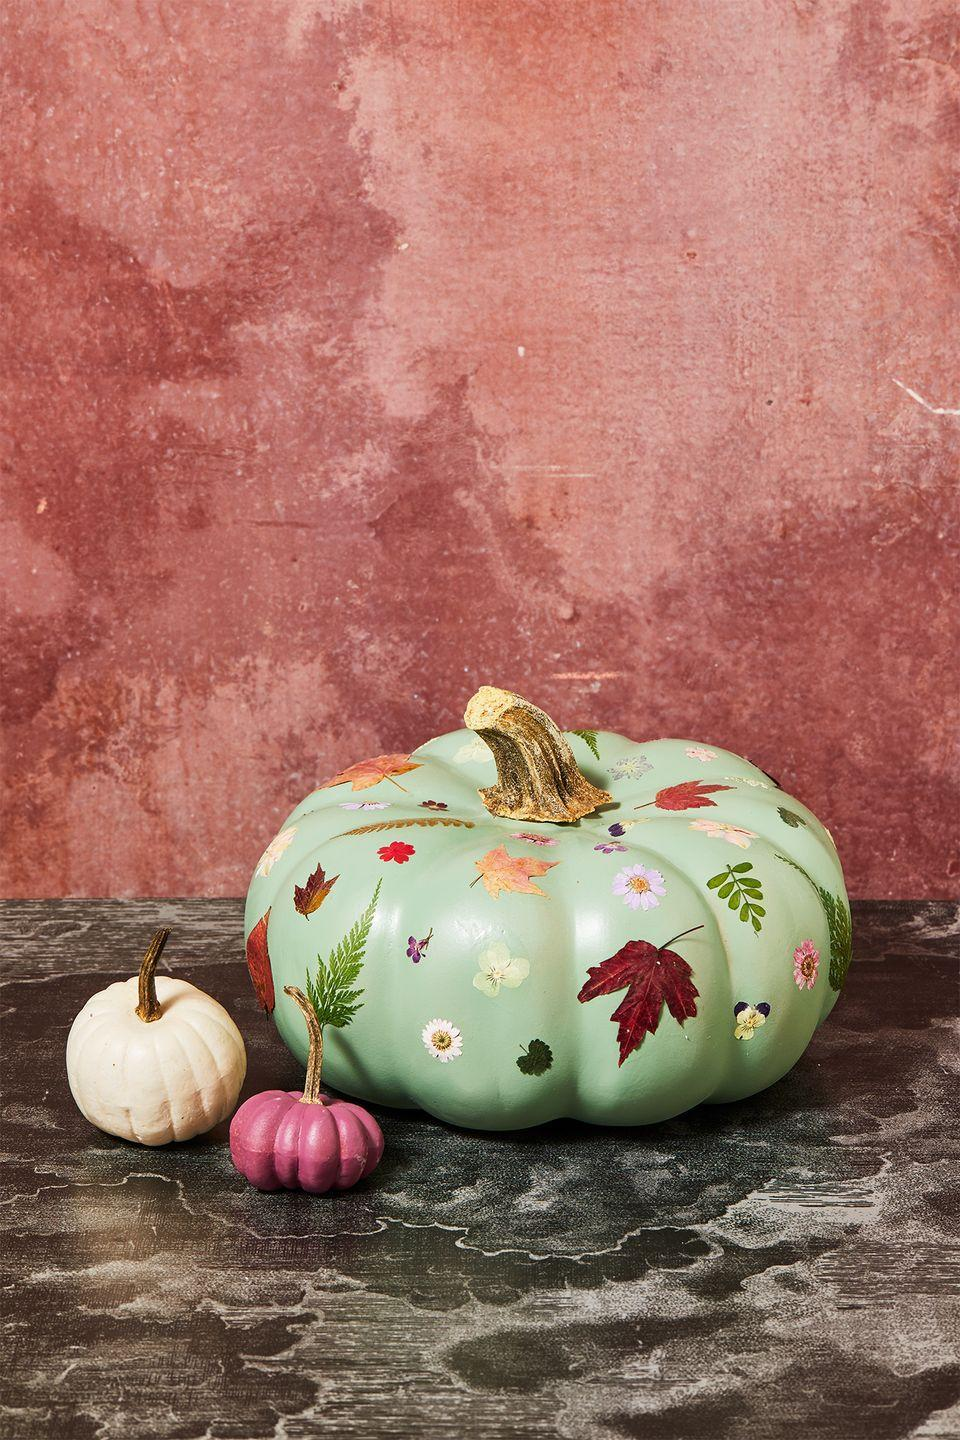 <p>Give your decor the loveliest upgrade with this design. To make, paint a small area of Modge Podge on the pumpkin surface, large enough to fit your flower or leaf. Using tweezers, carefully place the flower onto the Modge Podge. Then, use the brush with a little Modge Podge to smooth out the petals of the flower/leaf. Let it dry completely and repeat all over the surface of the pumpkin. Once dry, paint another layer or two of Modge Podge on top of the flowers and leaves to seal. Let dry for several hours to fully cure.</p>